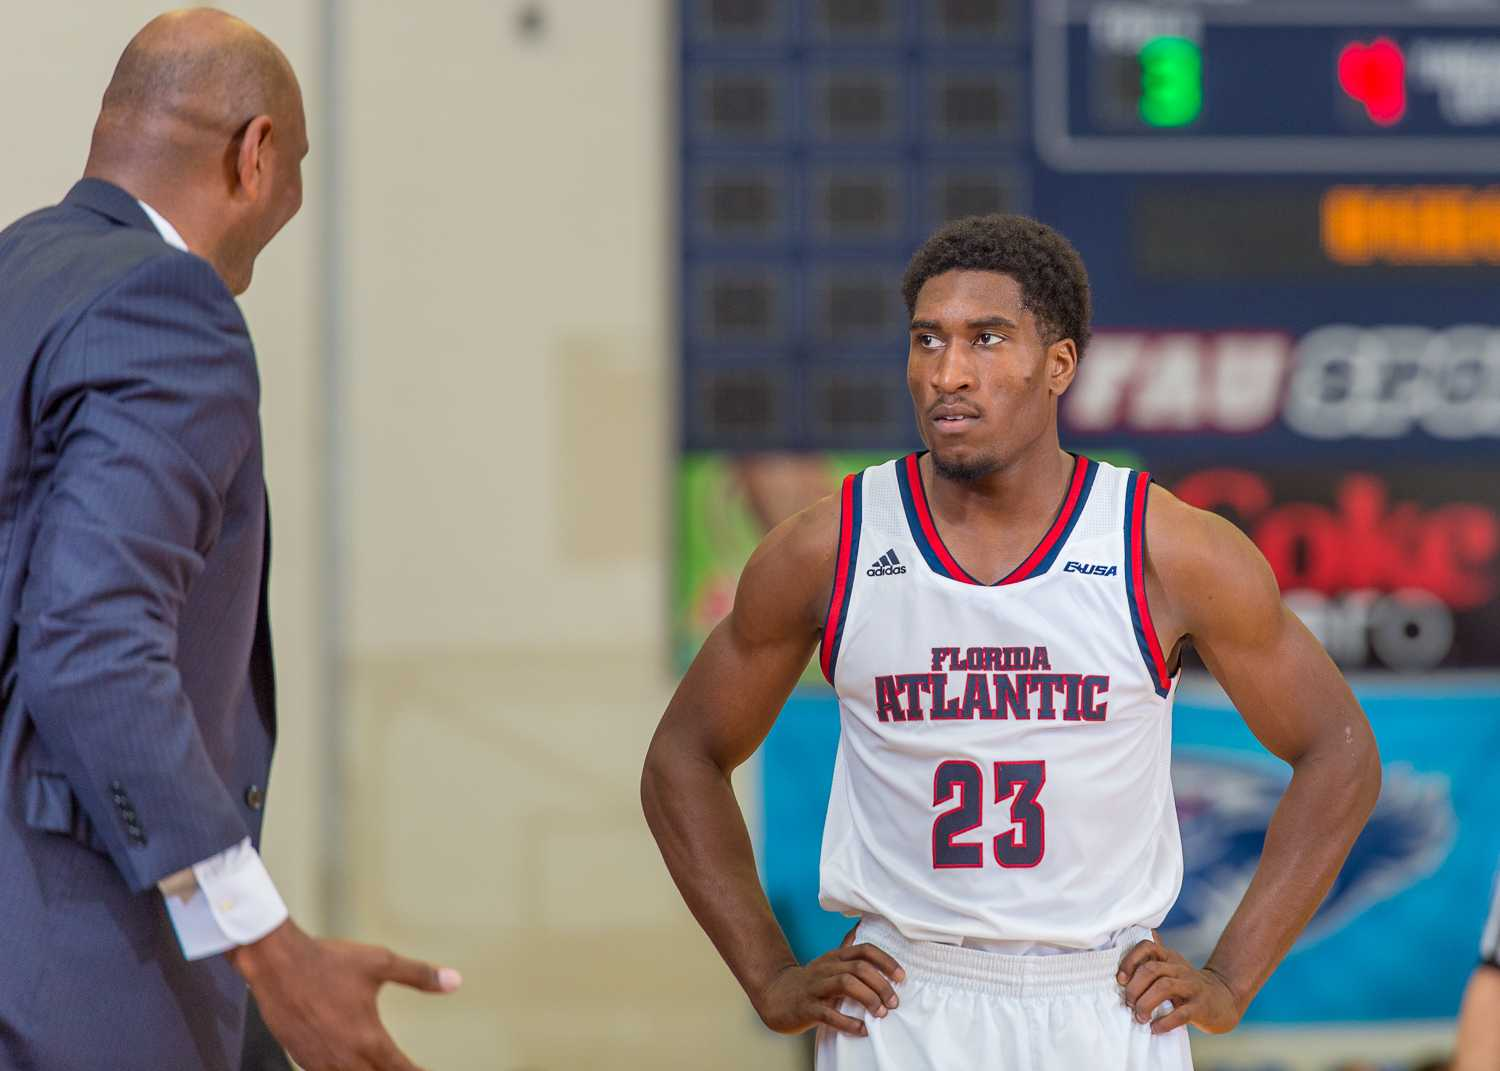 FAU head coach Michael Curry speaks with guard Solomon Poole (23) during a break in the second half.  Poole was 3-for-13 on field goals and 2-for-5 on 3-pointers.inside the arc in the loss on Feb. 5.